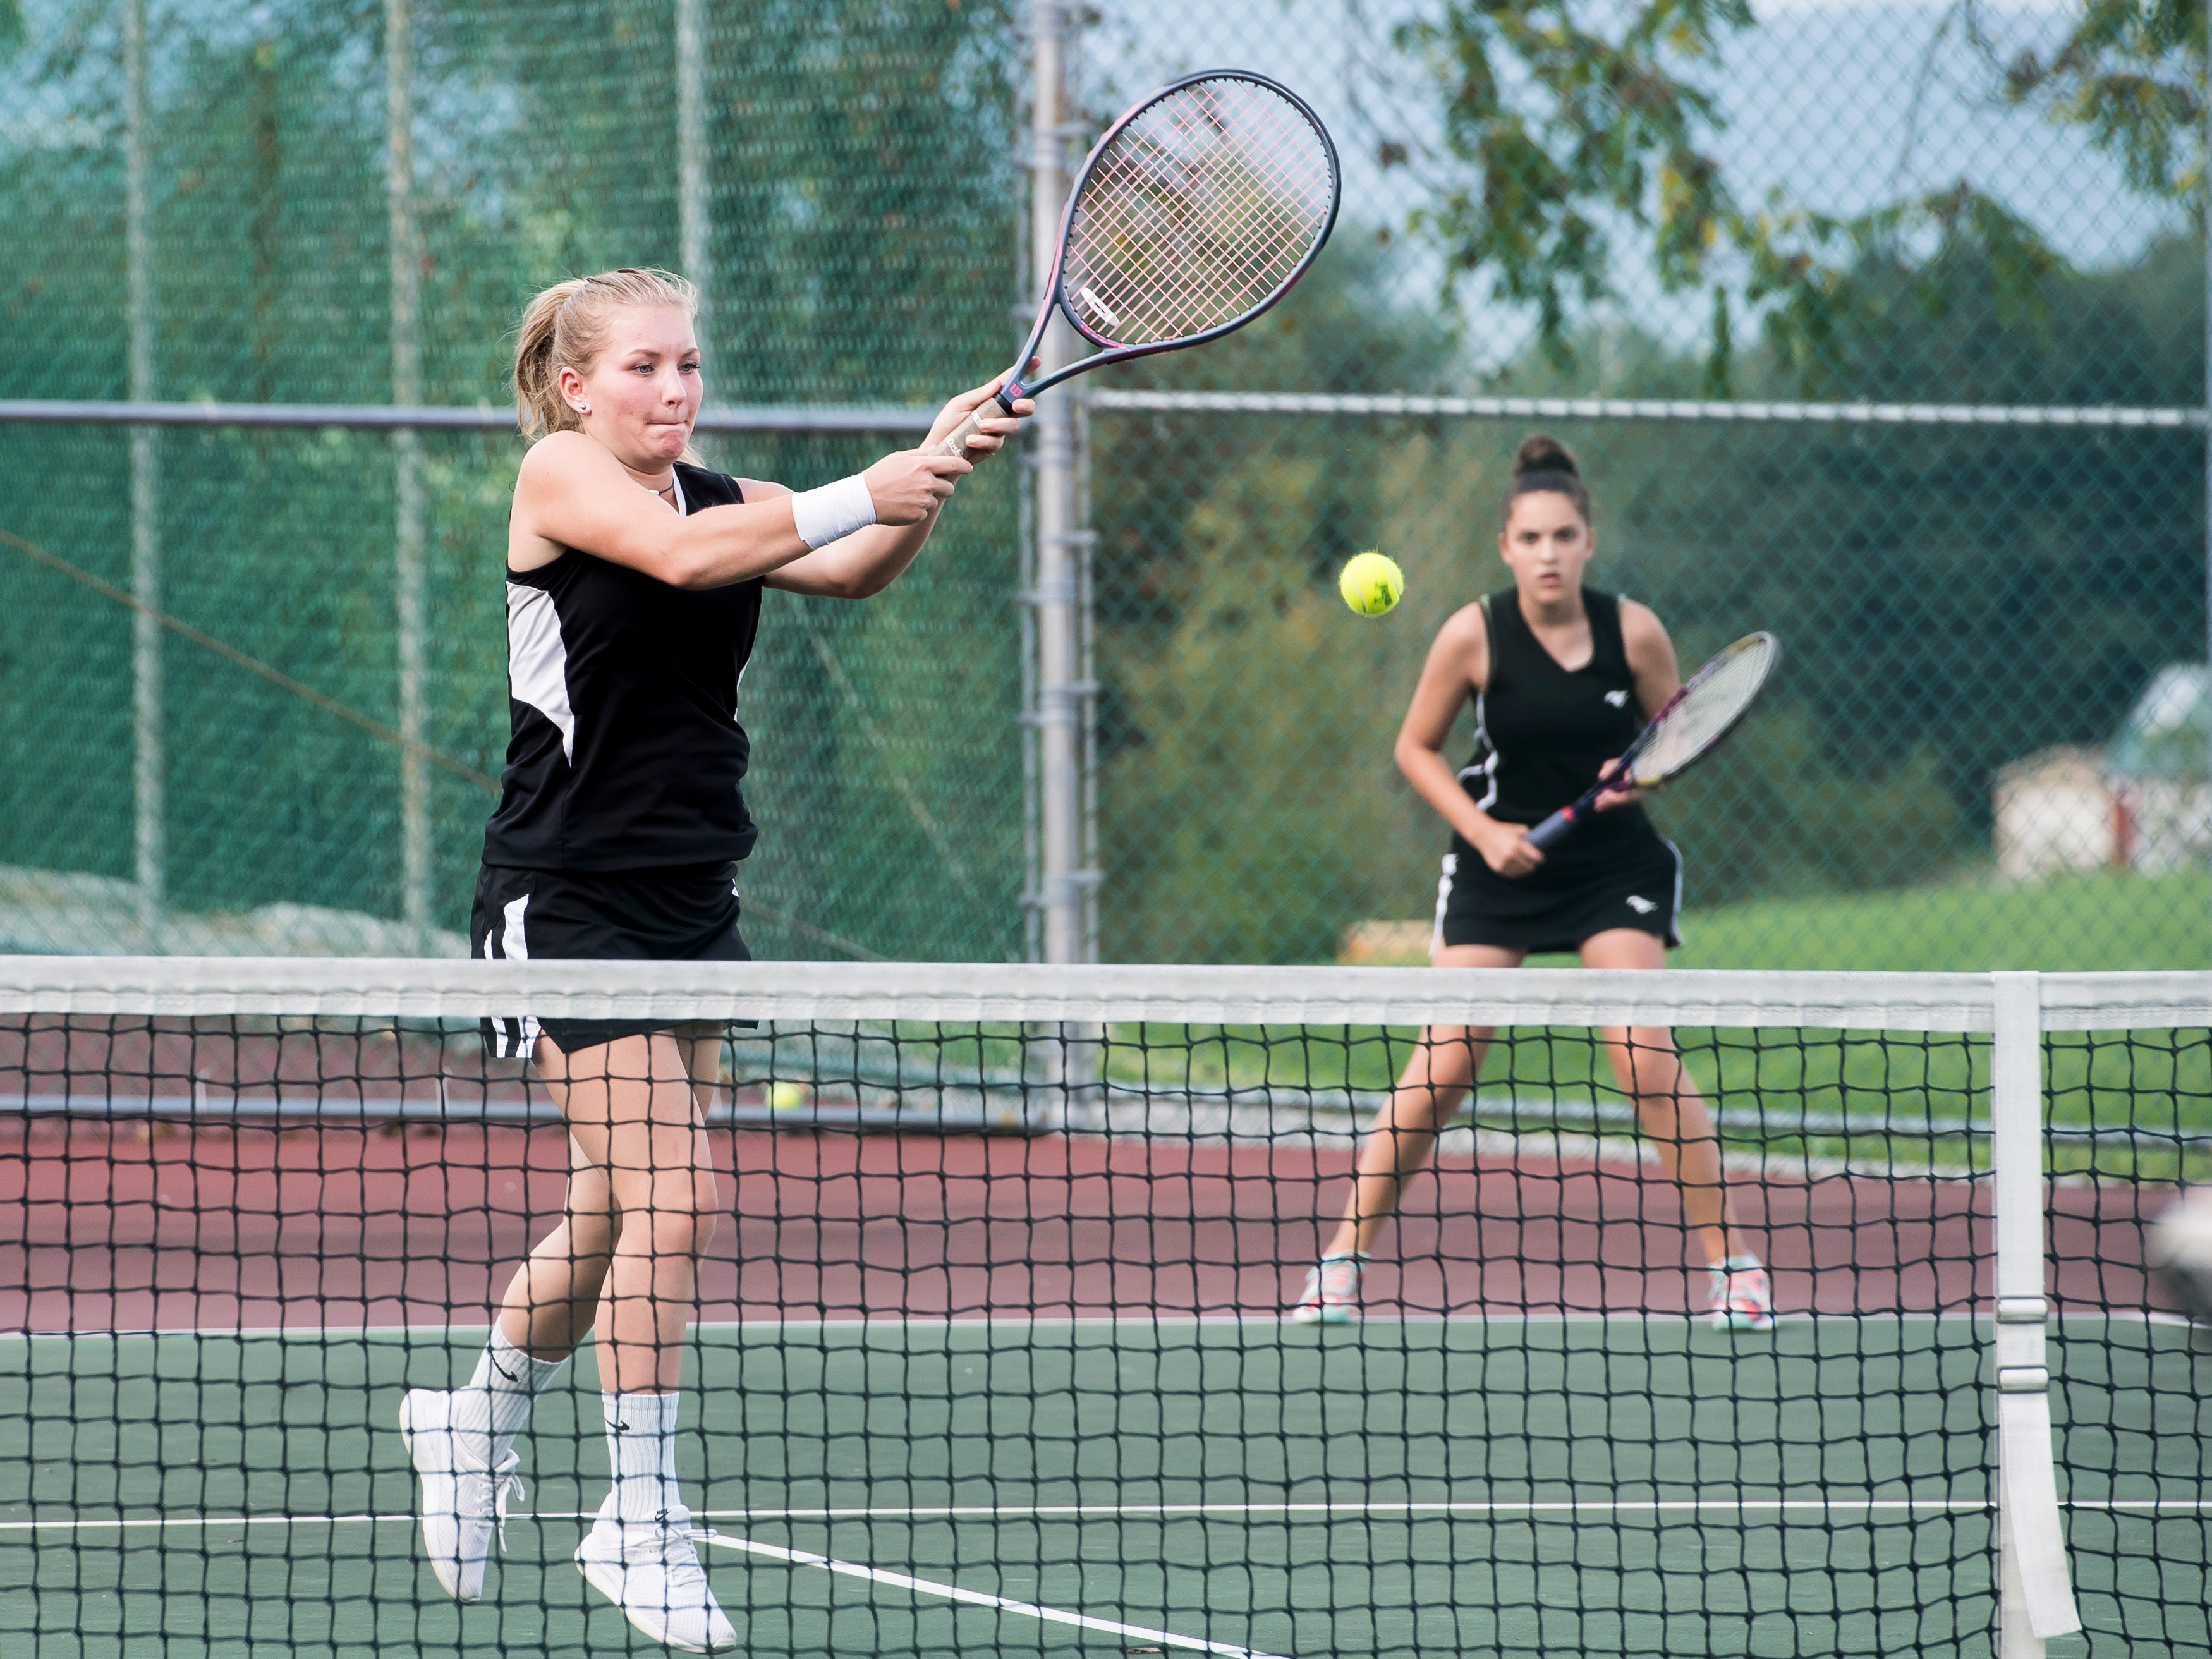 South Western's Skylar Zepp hits the ball during the No. 2 doubles match against New Oxford on Tuesday, October 2, 2018.